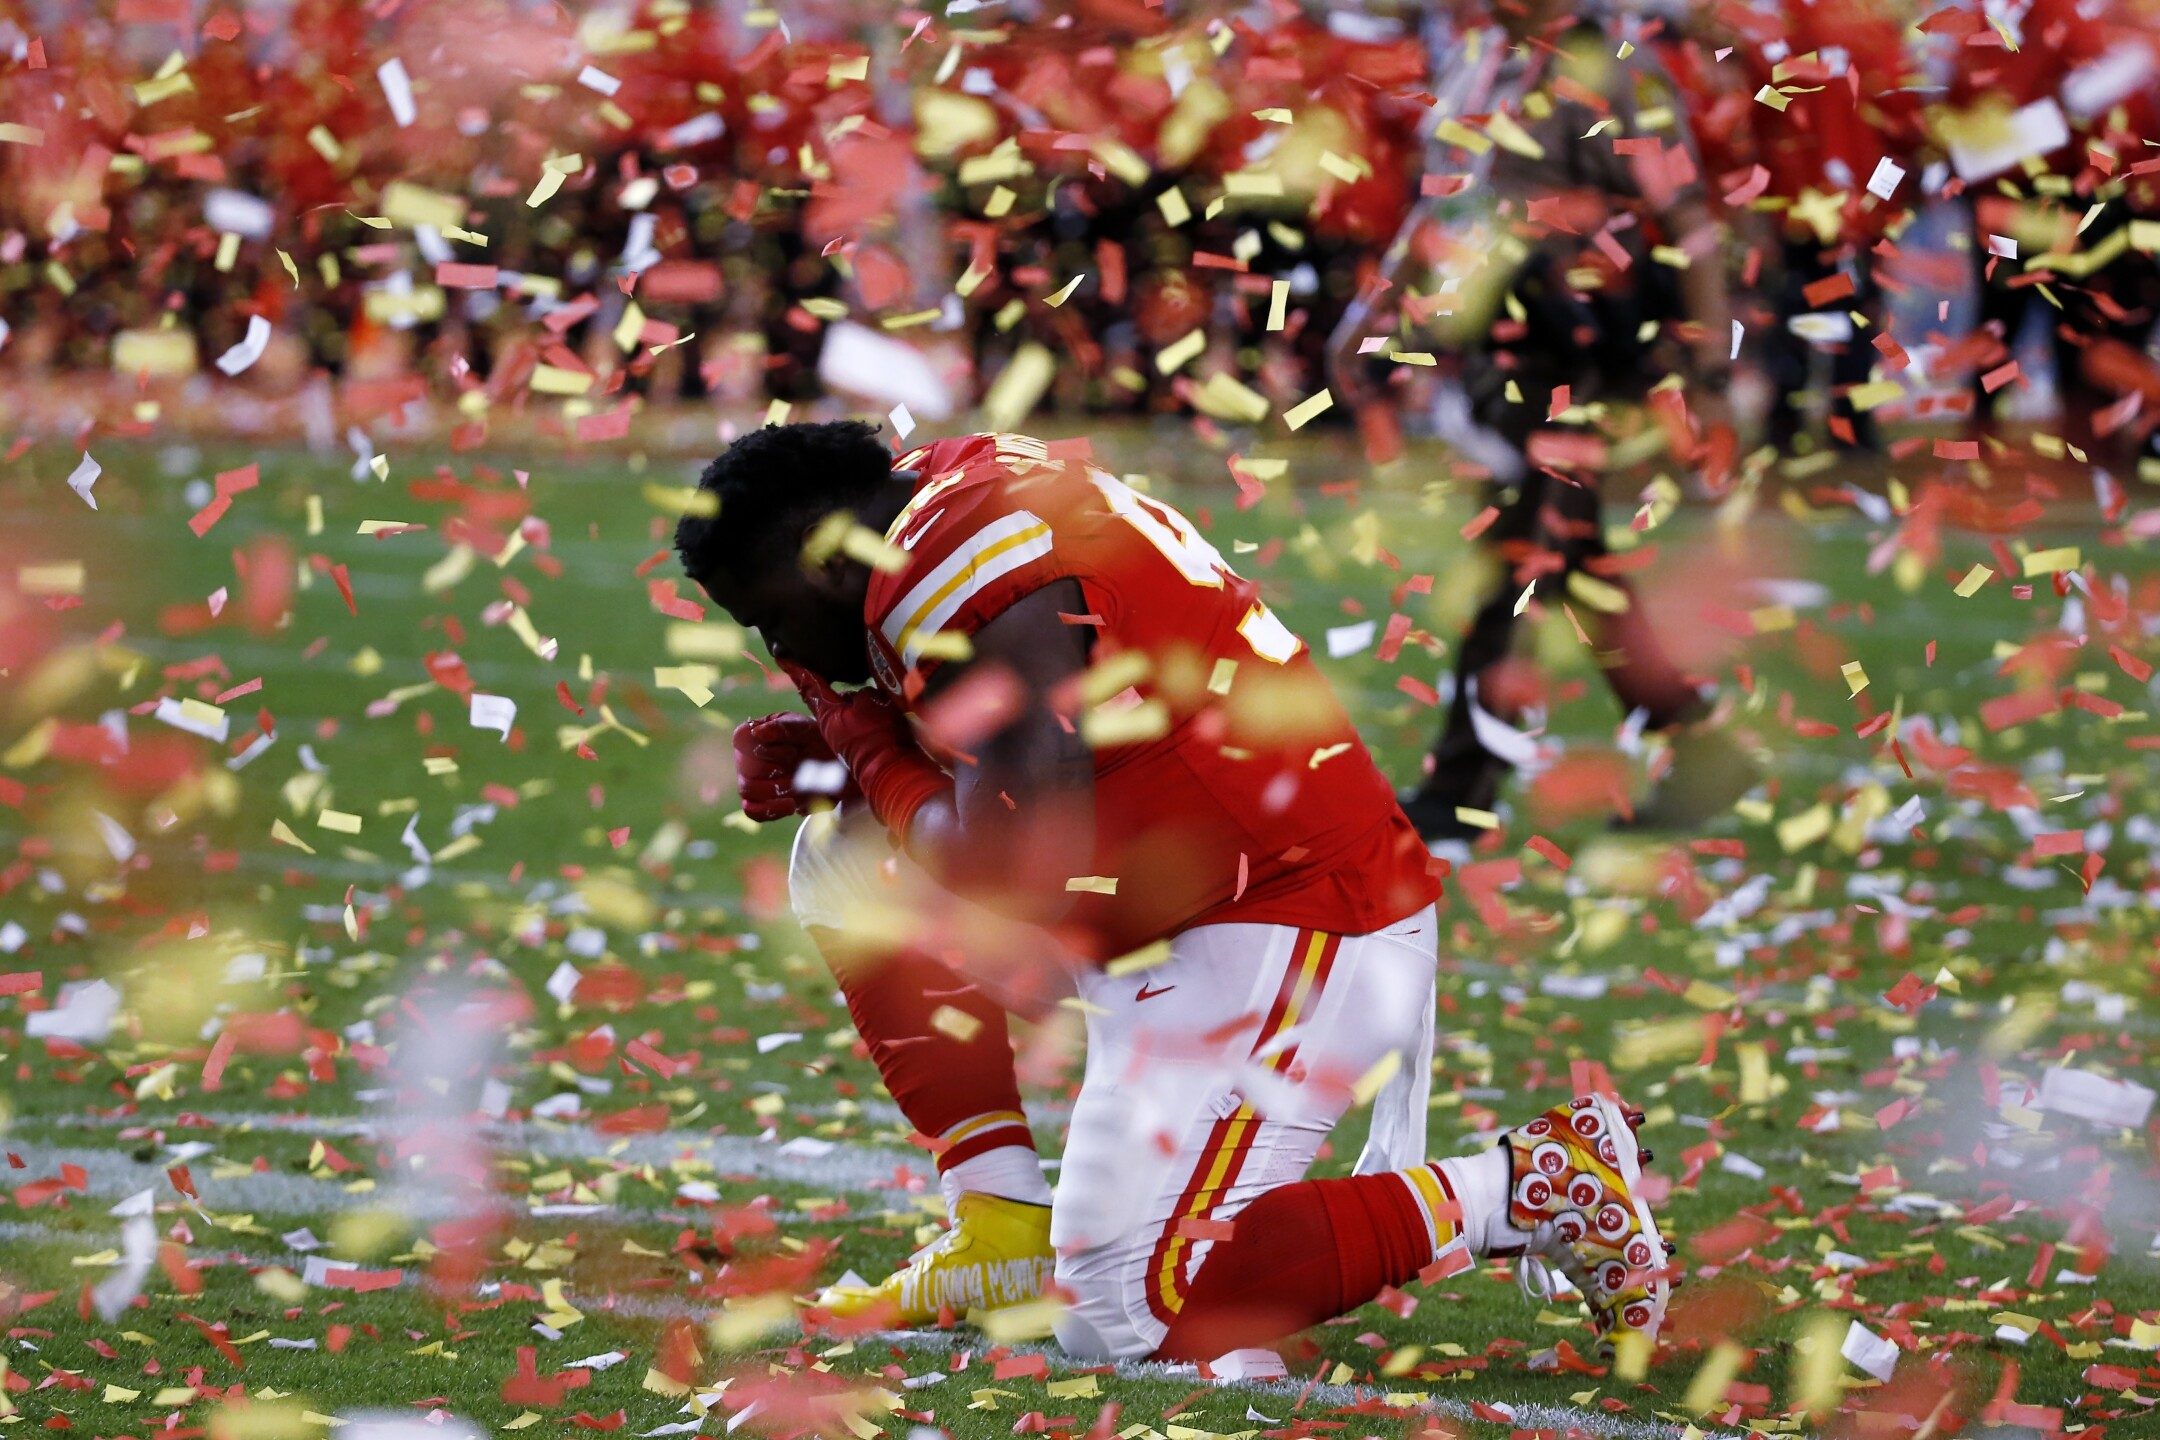 PHOTOS: Chiefs celebrate first Super Bowl title in 50 years